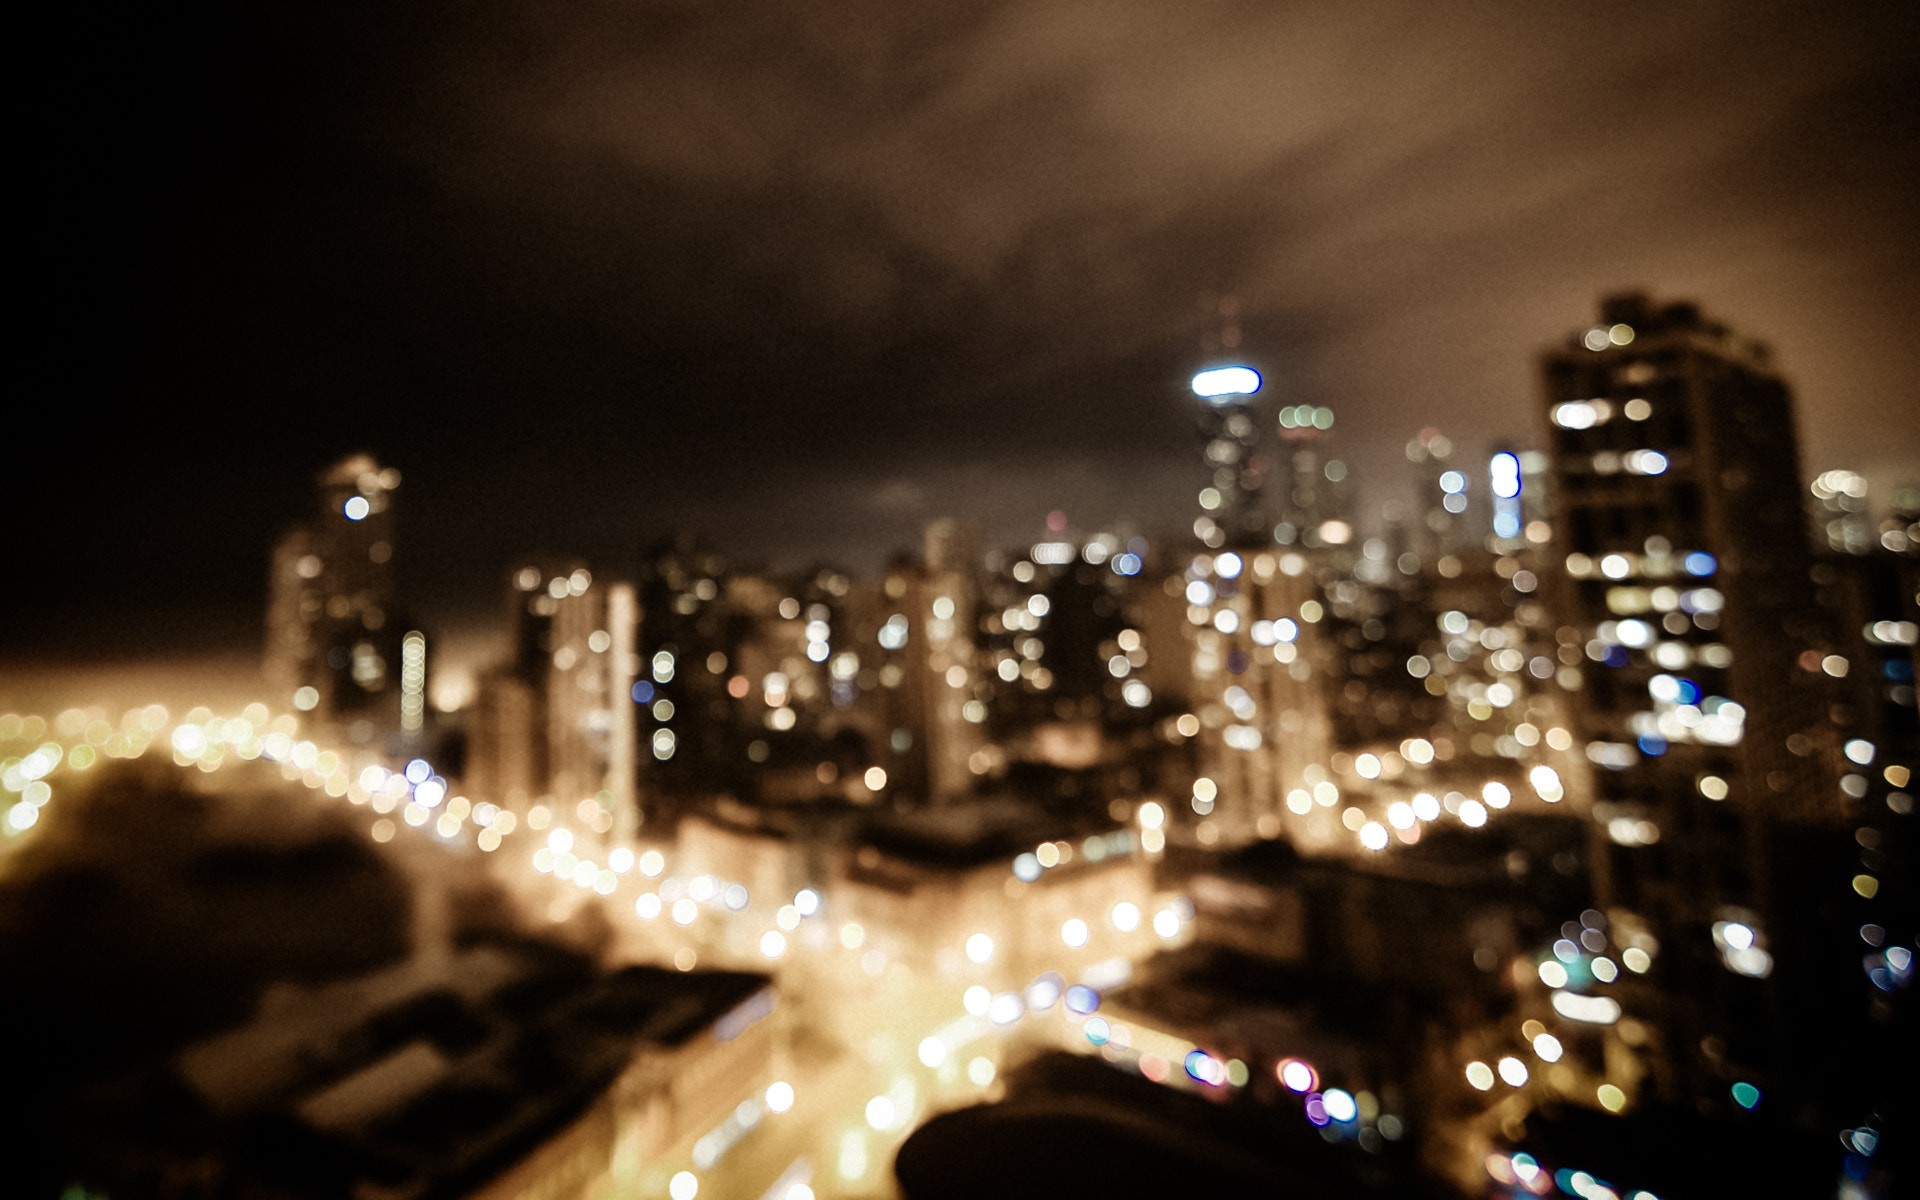 Photograph Chicago Bokeh by Chris Allen on 500px